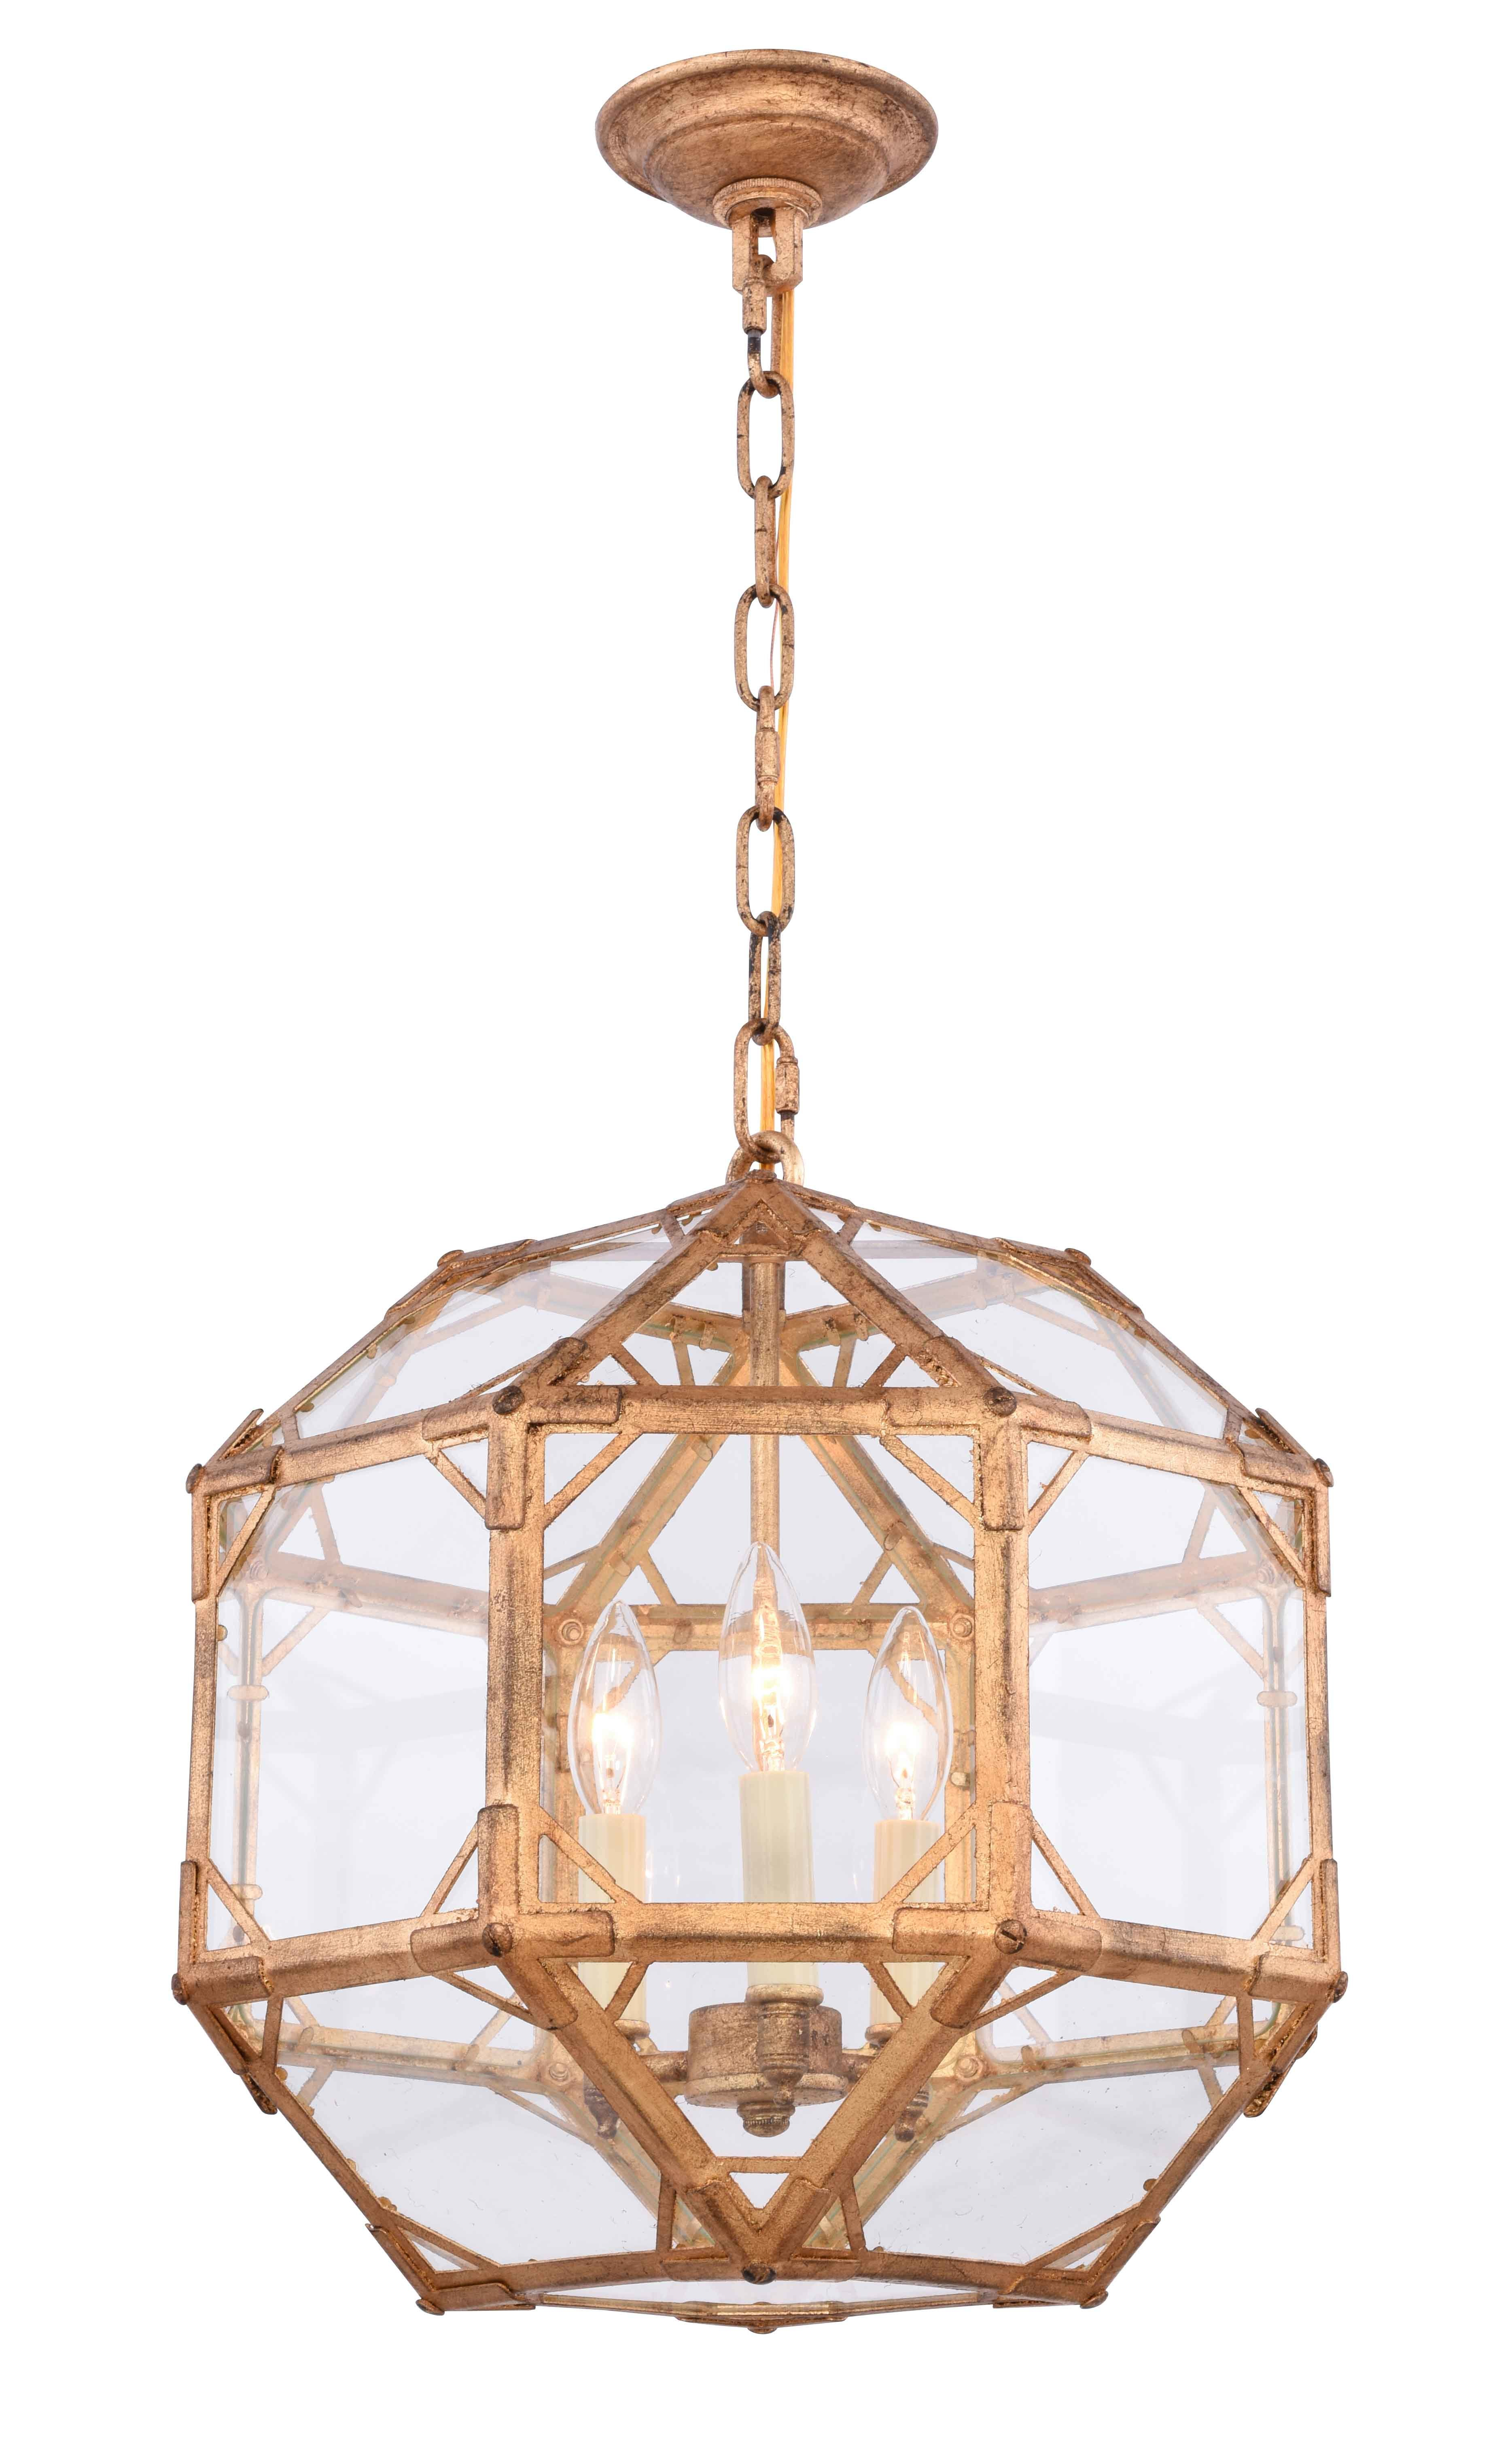 Puccio 3-Light Geometric Chandelier with regard to Cavanagh 4-Light Geometric Chandeliers (Image 25 of 30)